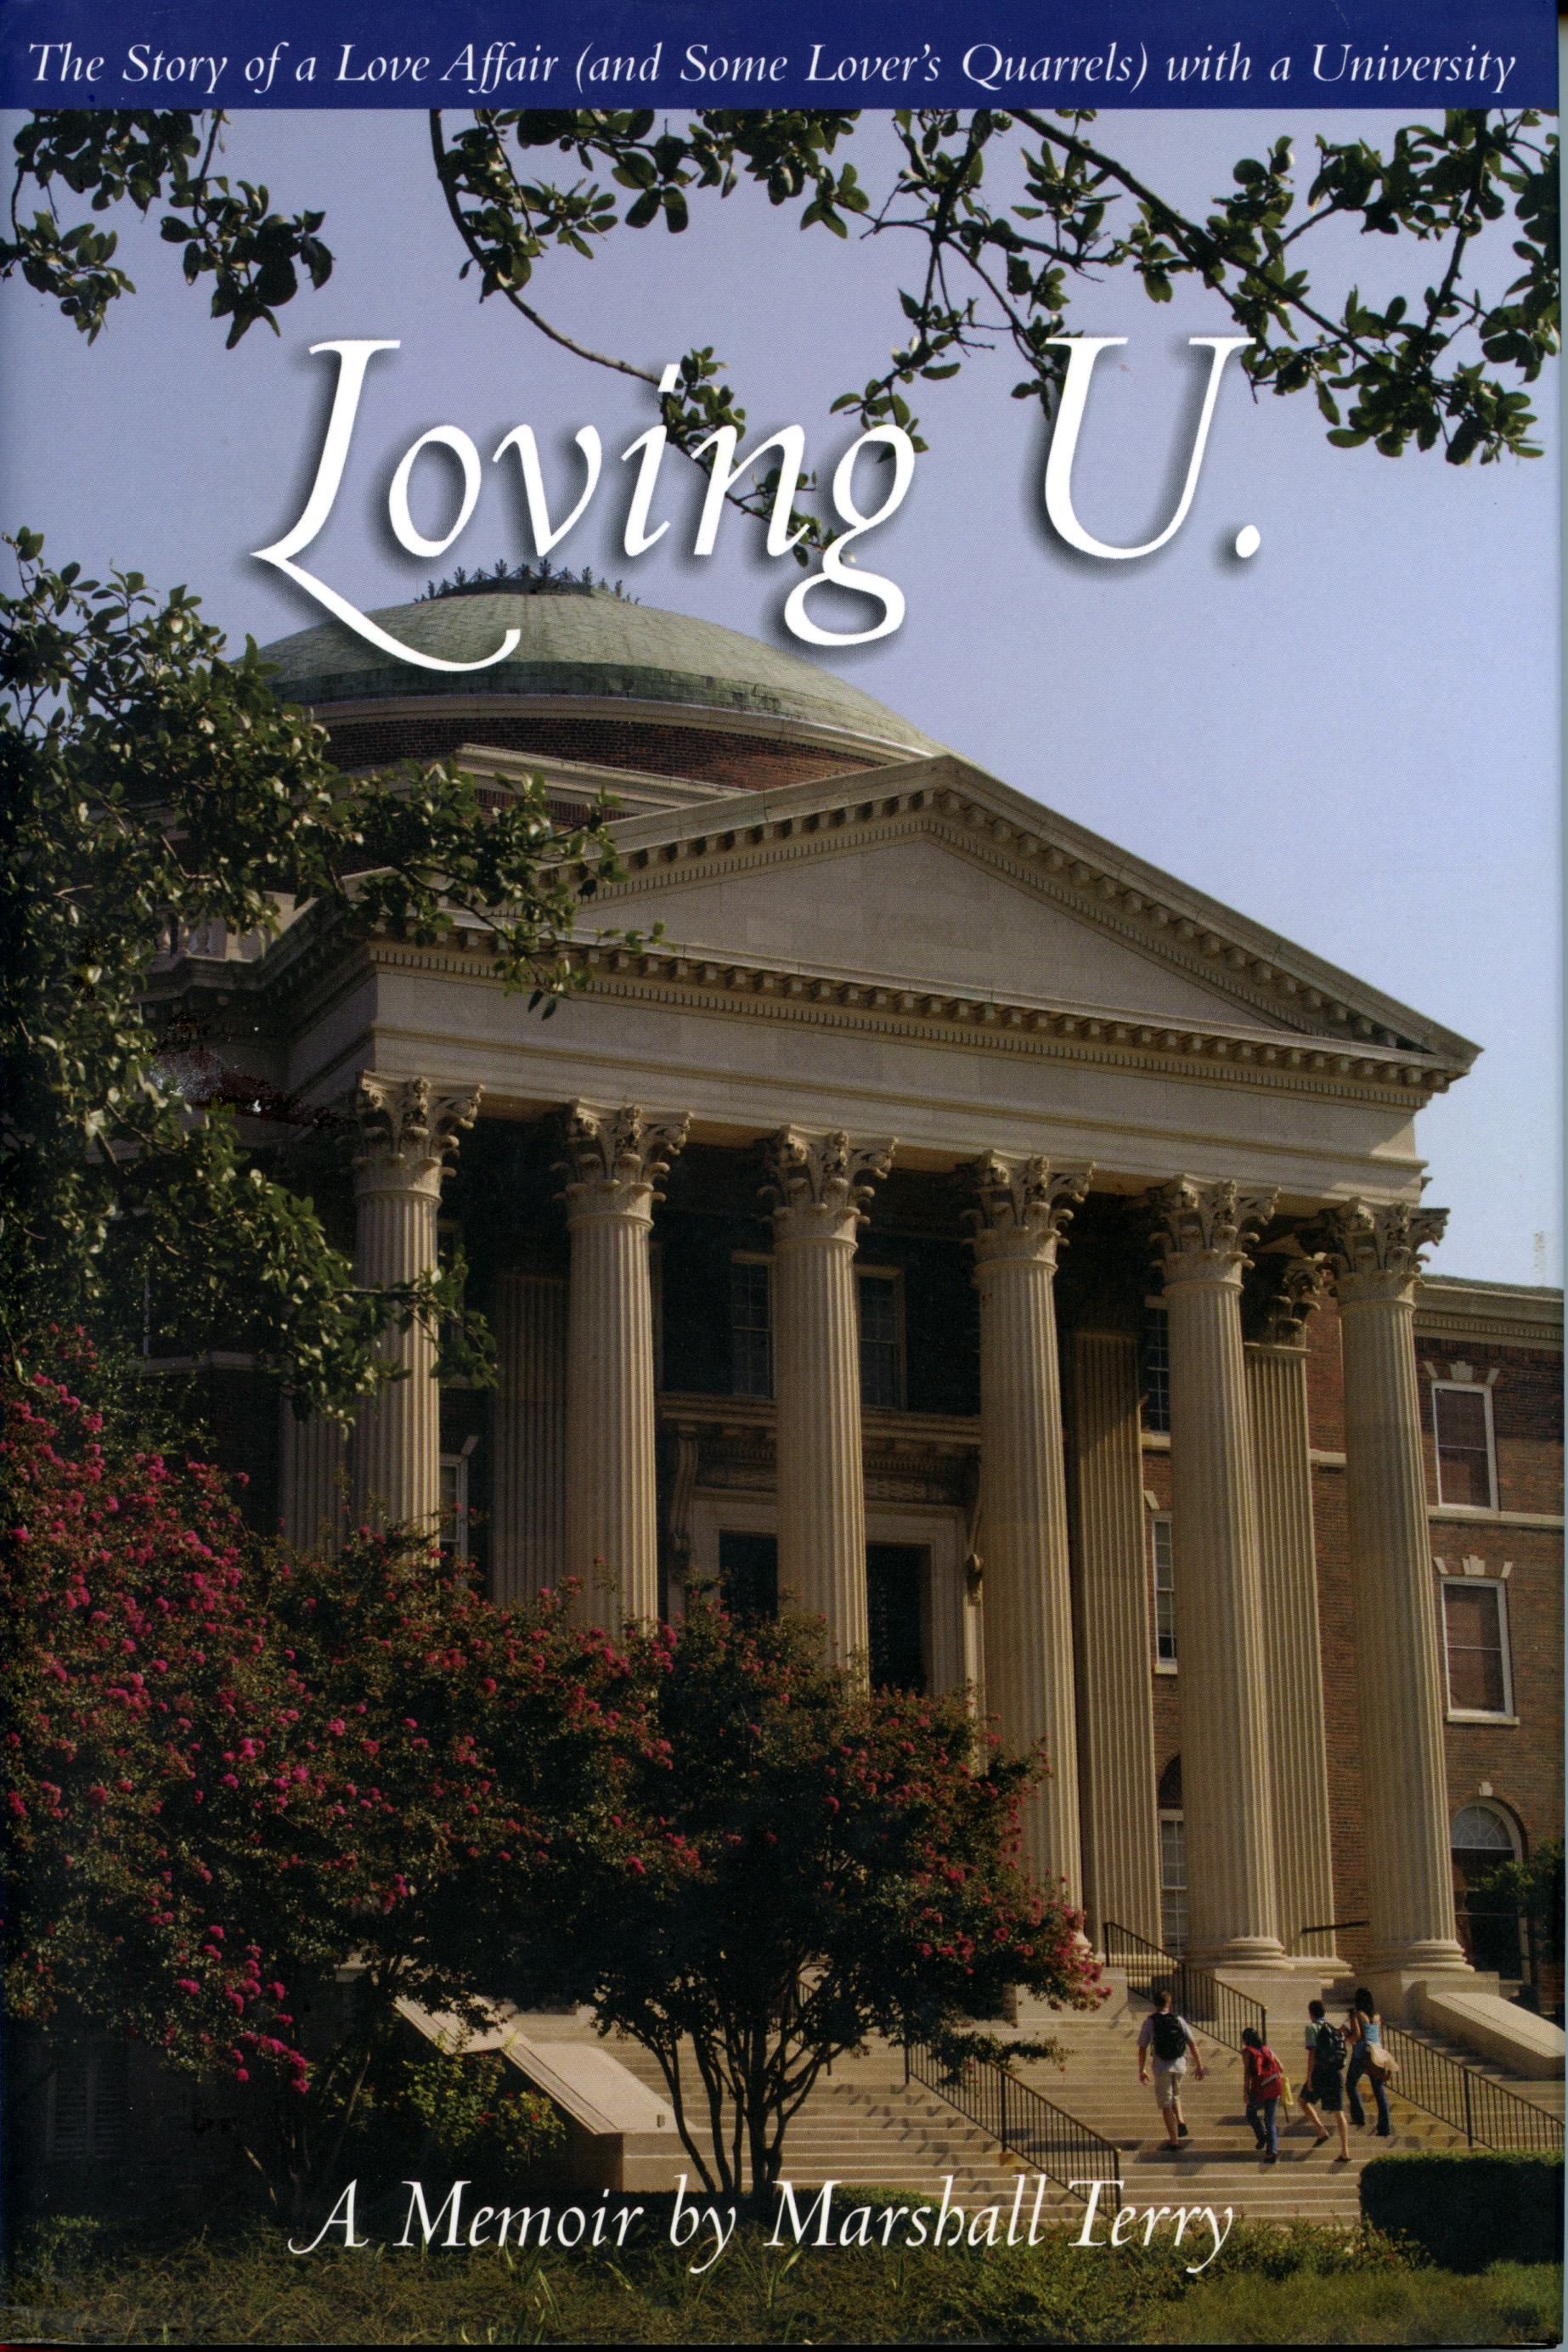 Cover of 'Loving U.: The Story of a Love Affair (And Some Lover's Quarrels) With a University' by Marshall Terry